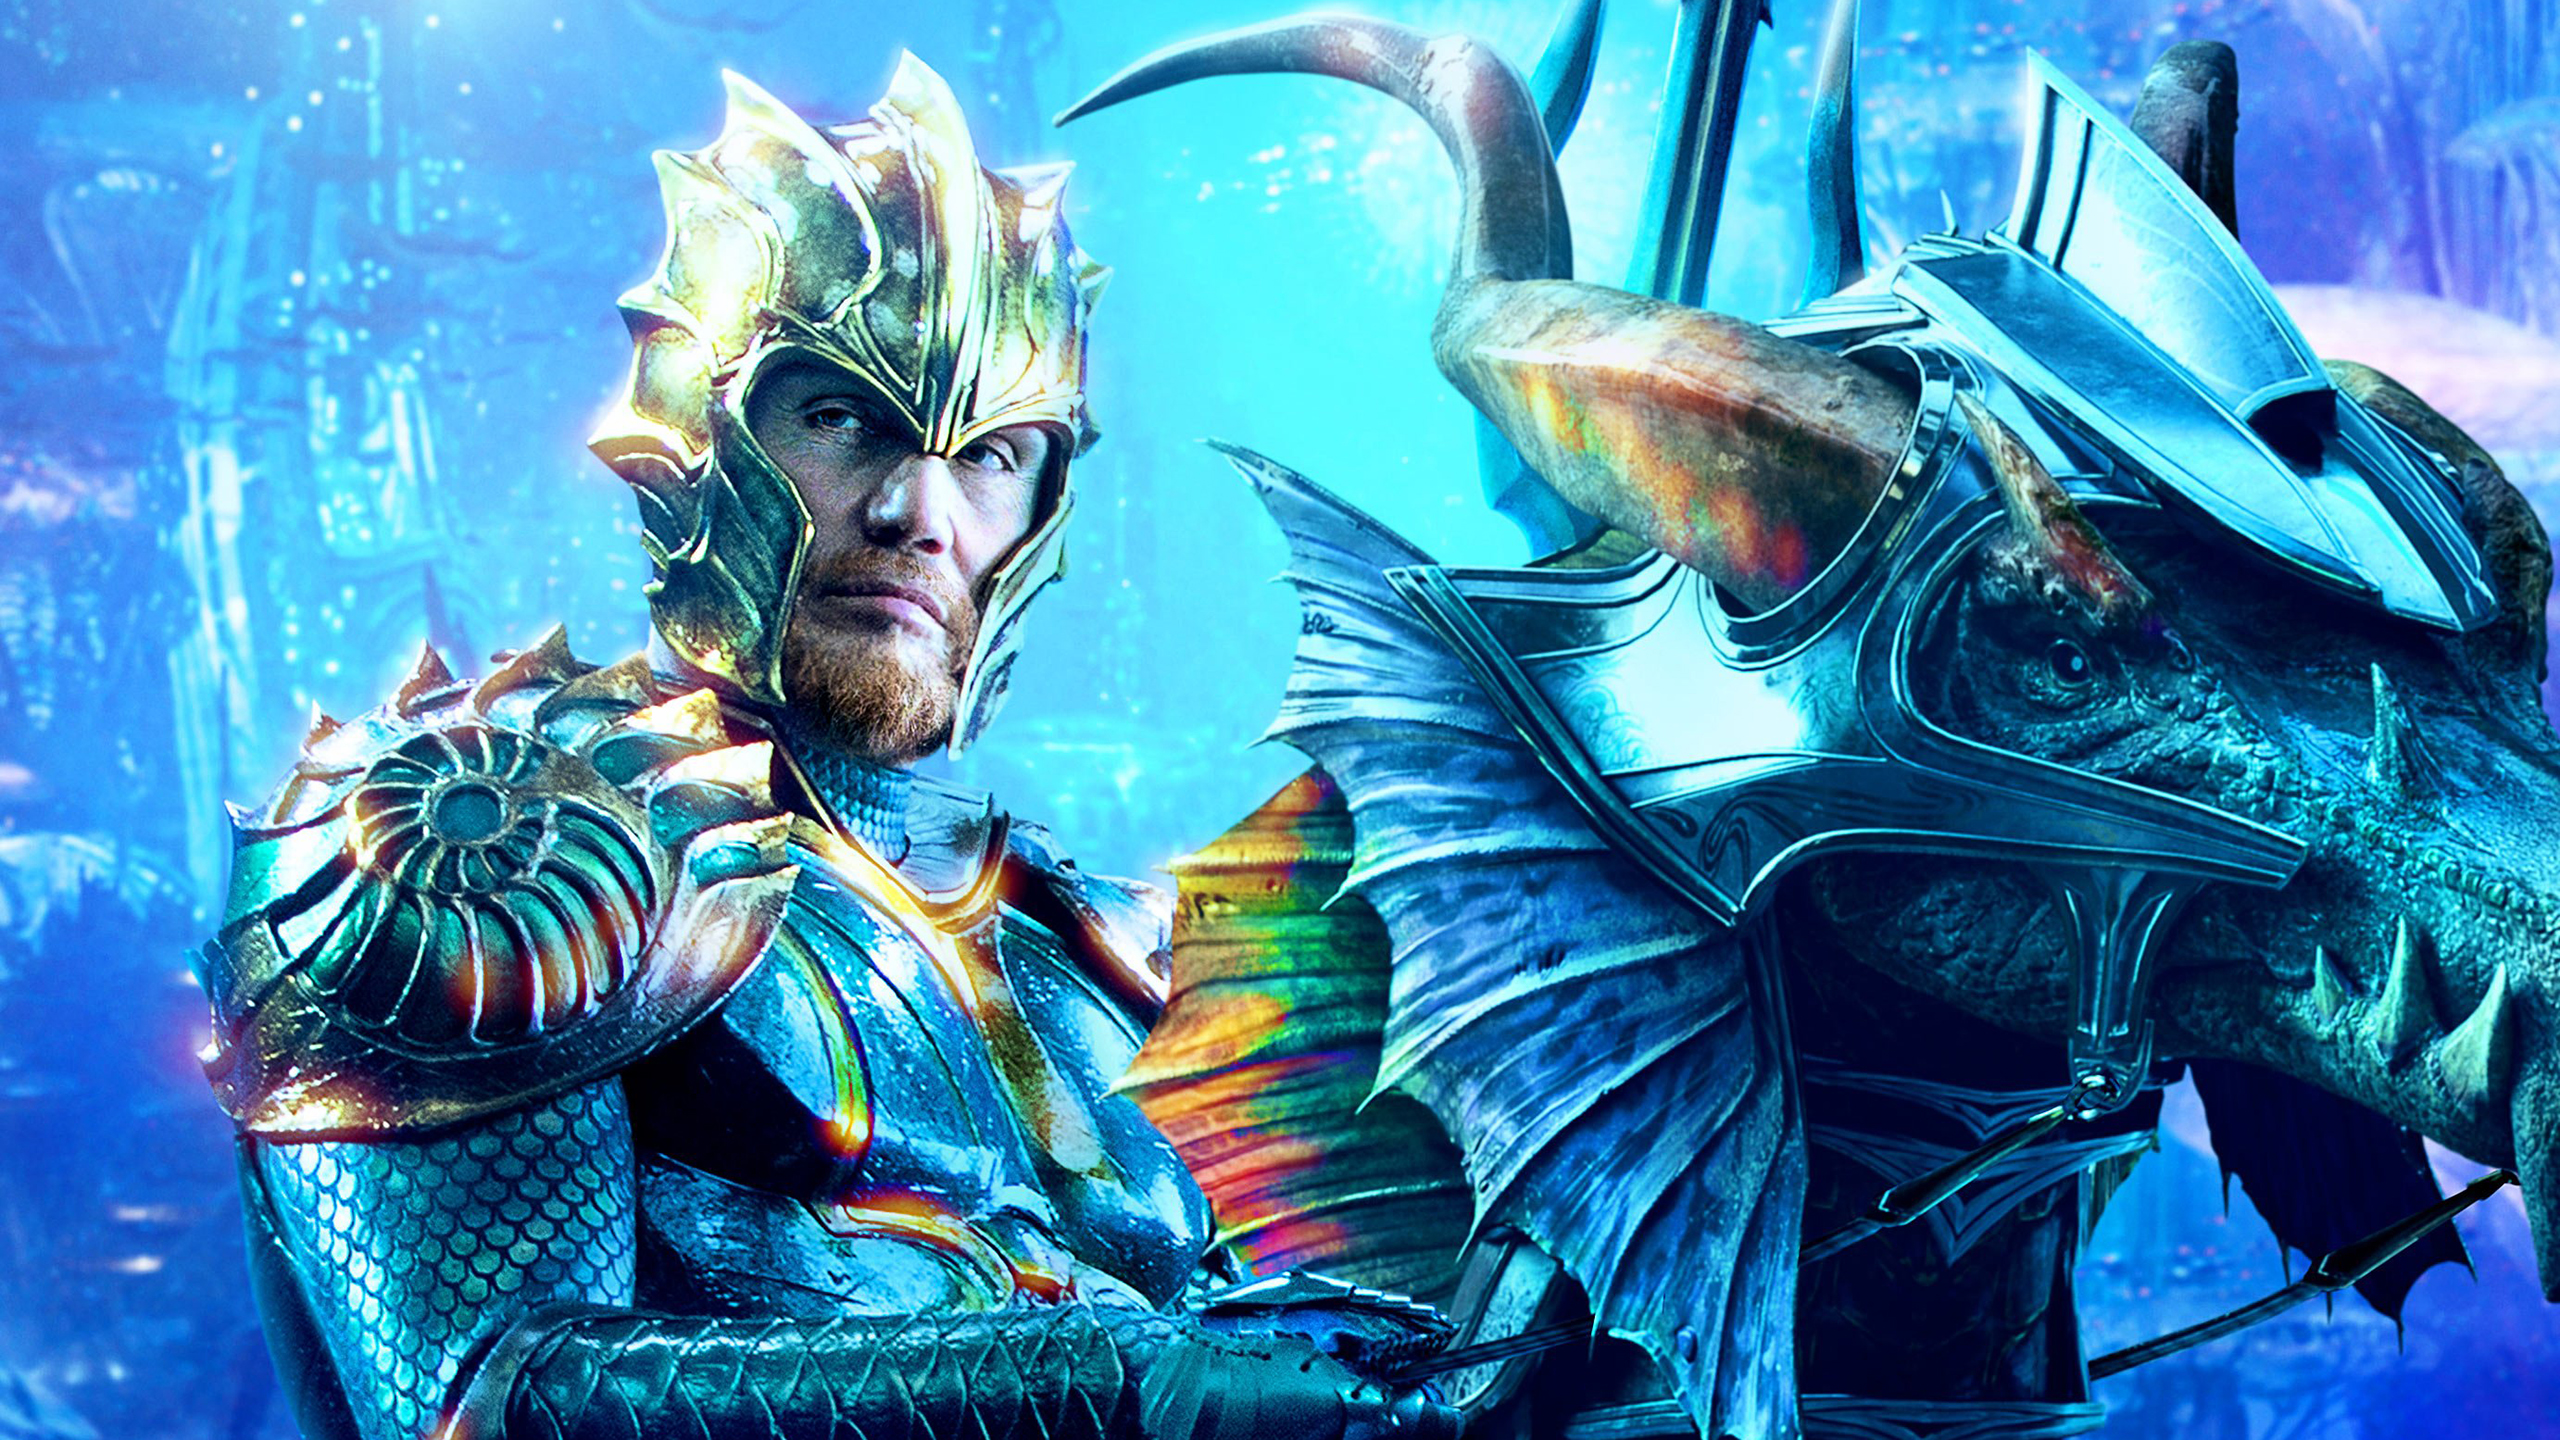 http://www.youloveit.ru/uploads/gallery/main/1003/youloveit_ru_aquaman_hd_wallpapers04.jpg